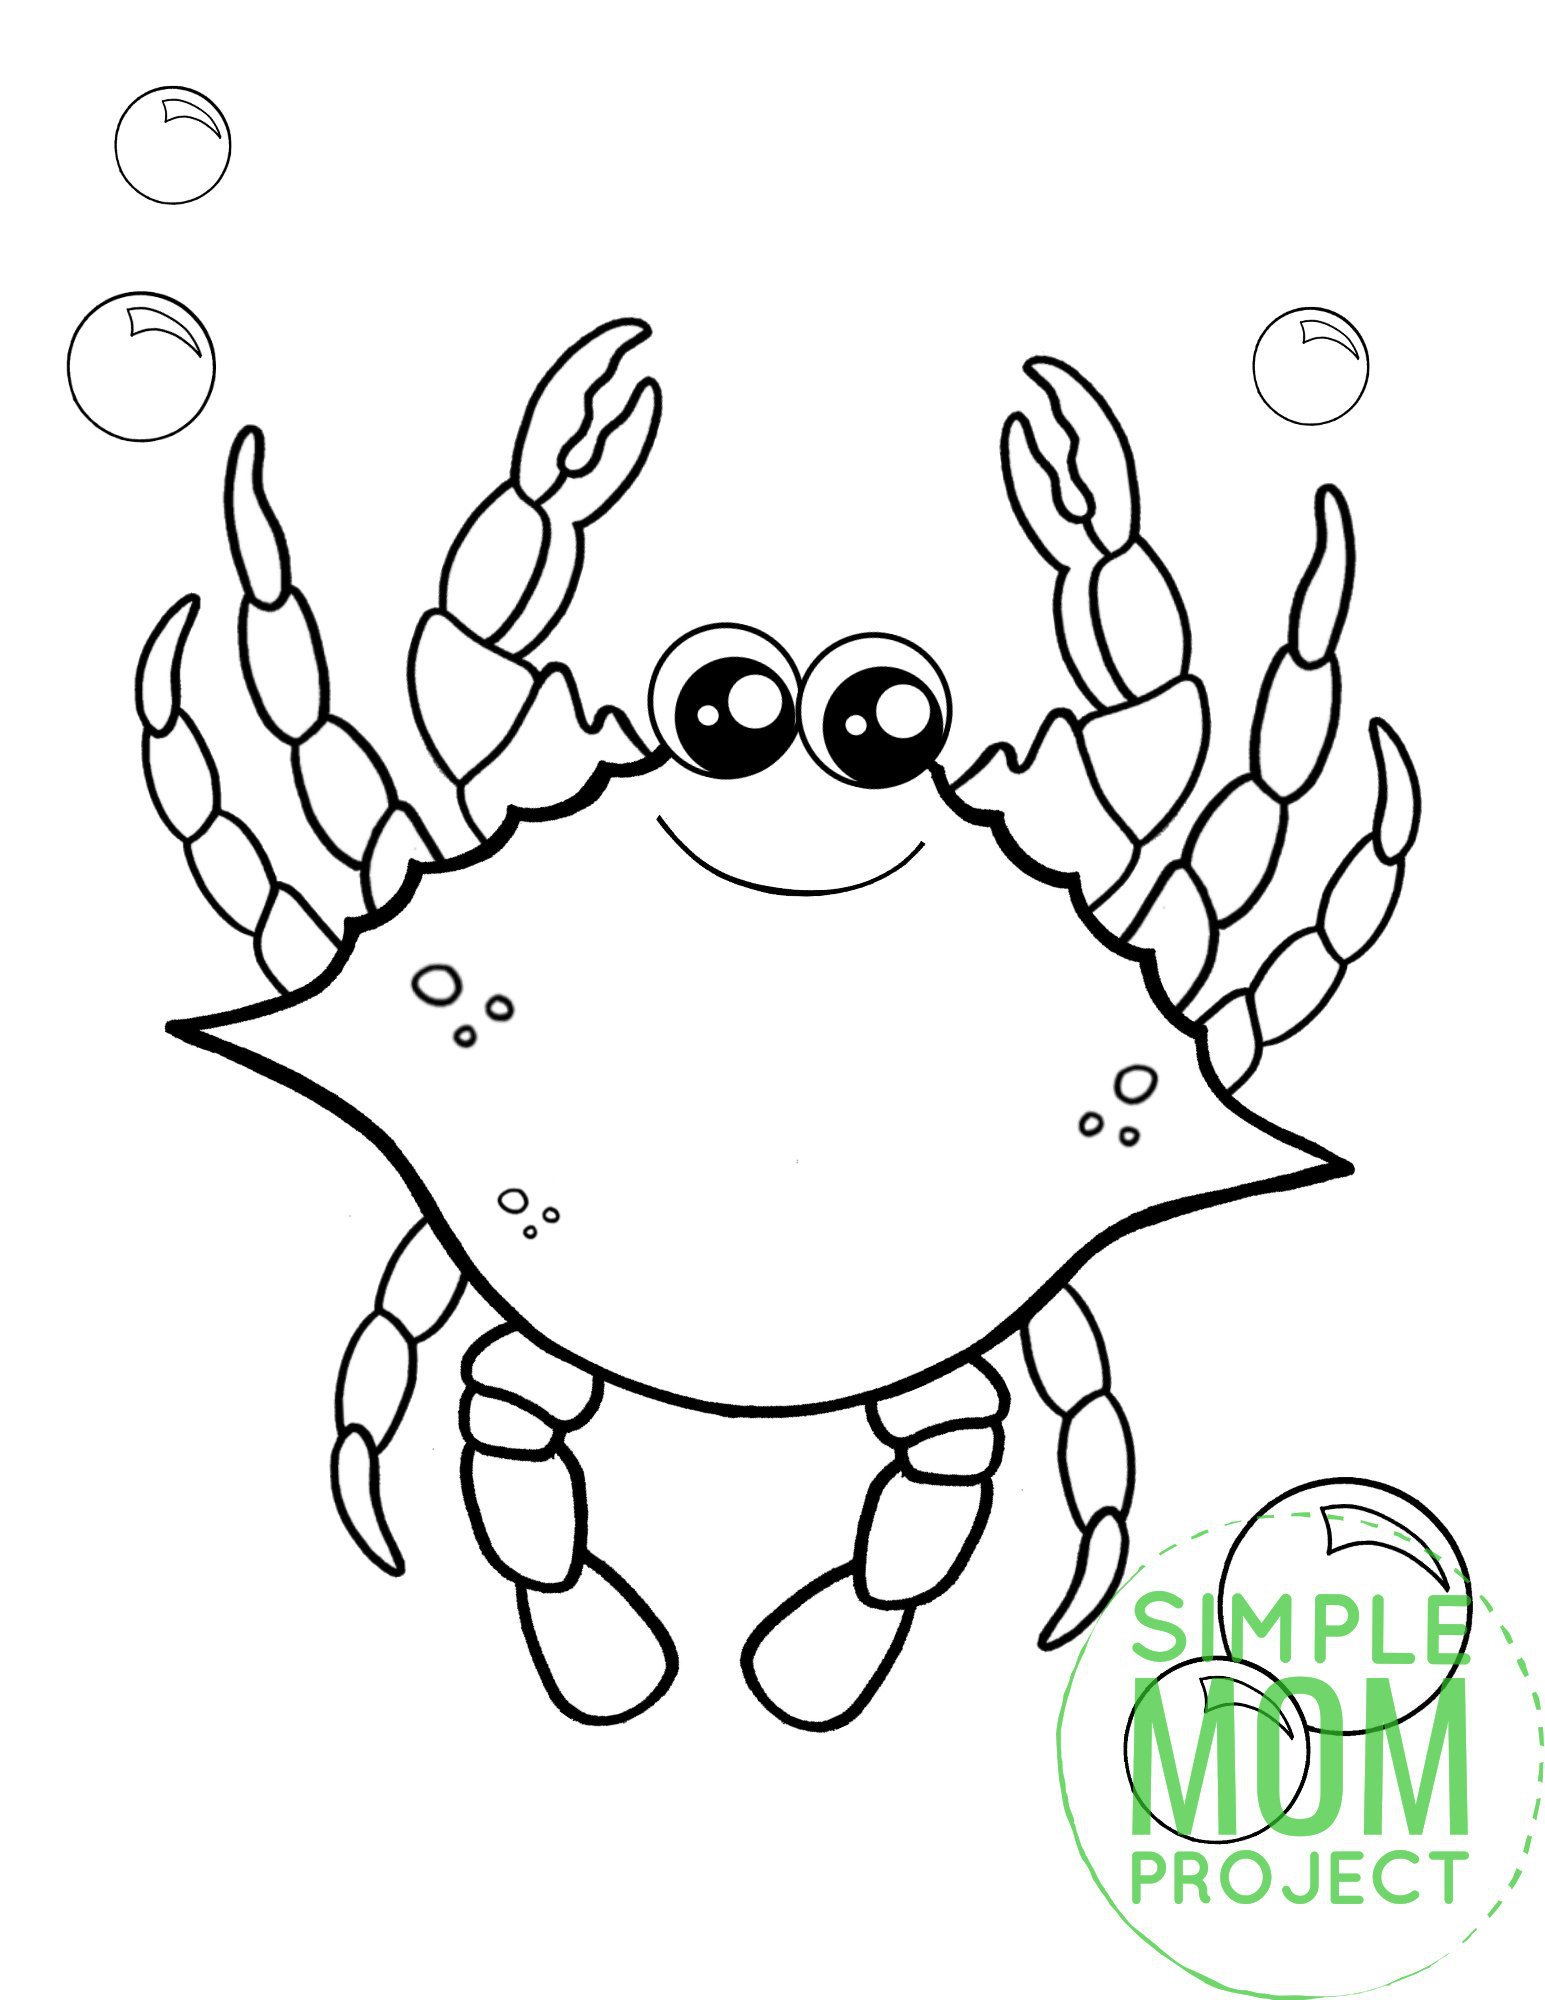 Printable Blue Crab Ocean Animal Coloring Page for Kids